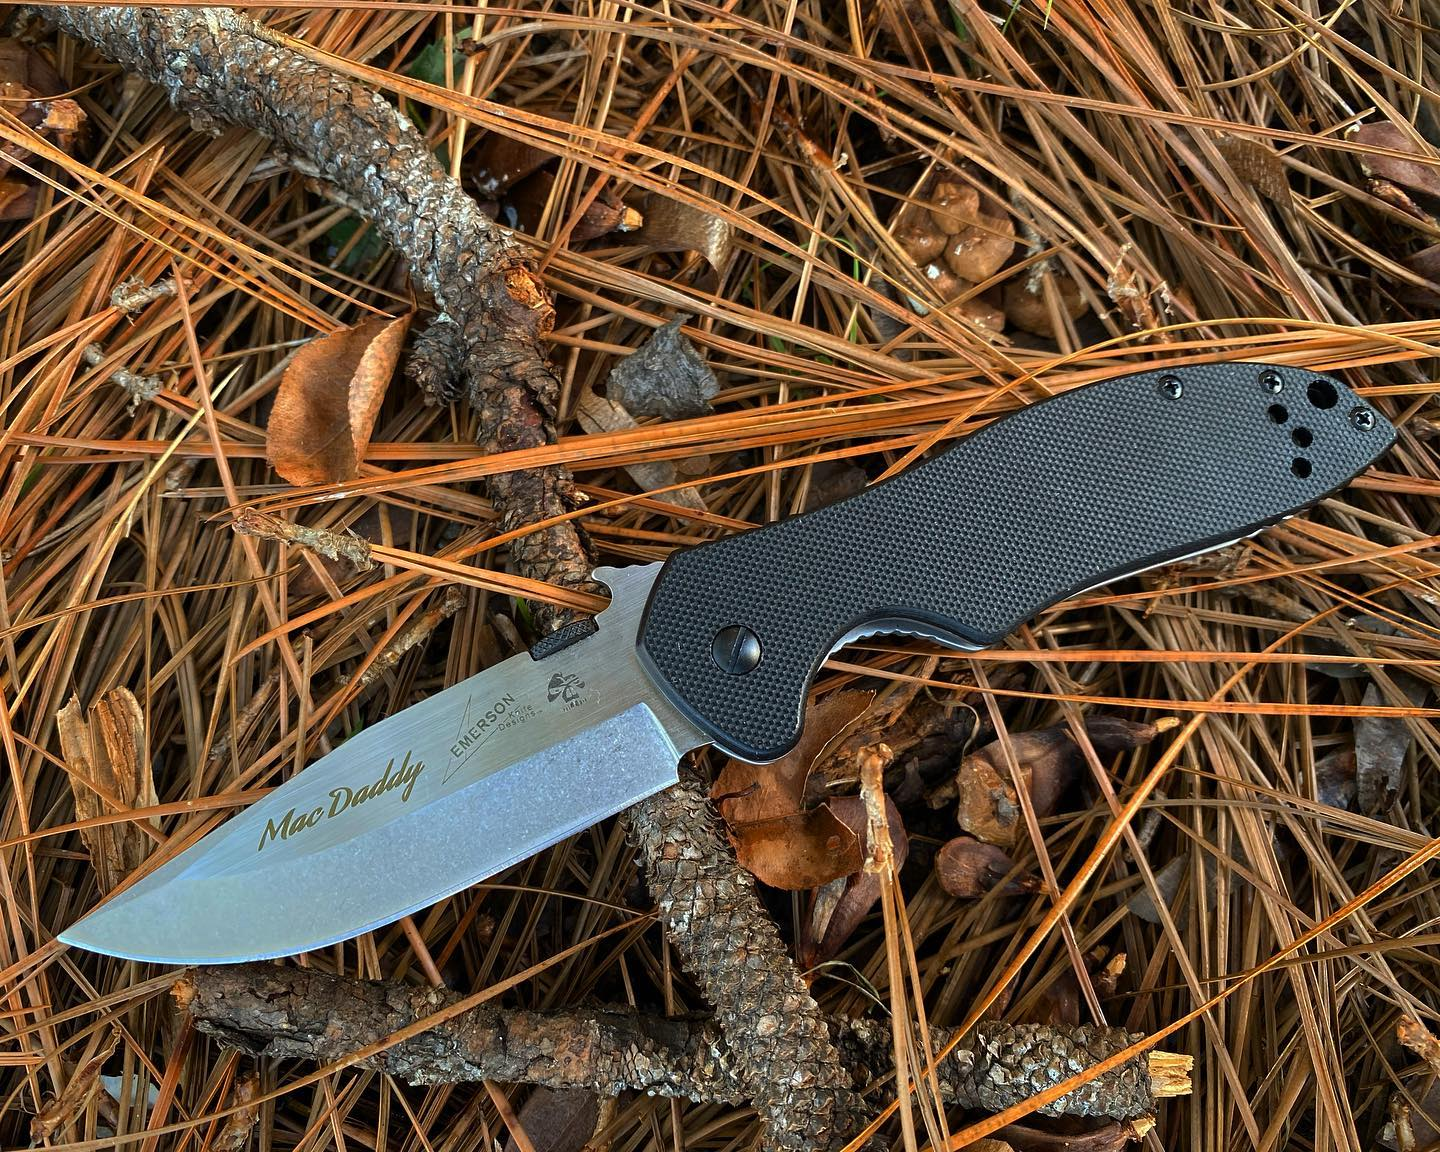 Kershaw Emerson 6034 CQC-6K knife with engraving done in calligraphy quil font.  Don't mess with this MacDaddy's knife! #emersonknives #6034 #engravedknives